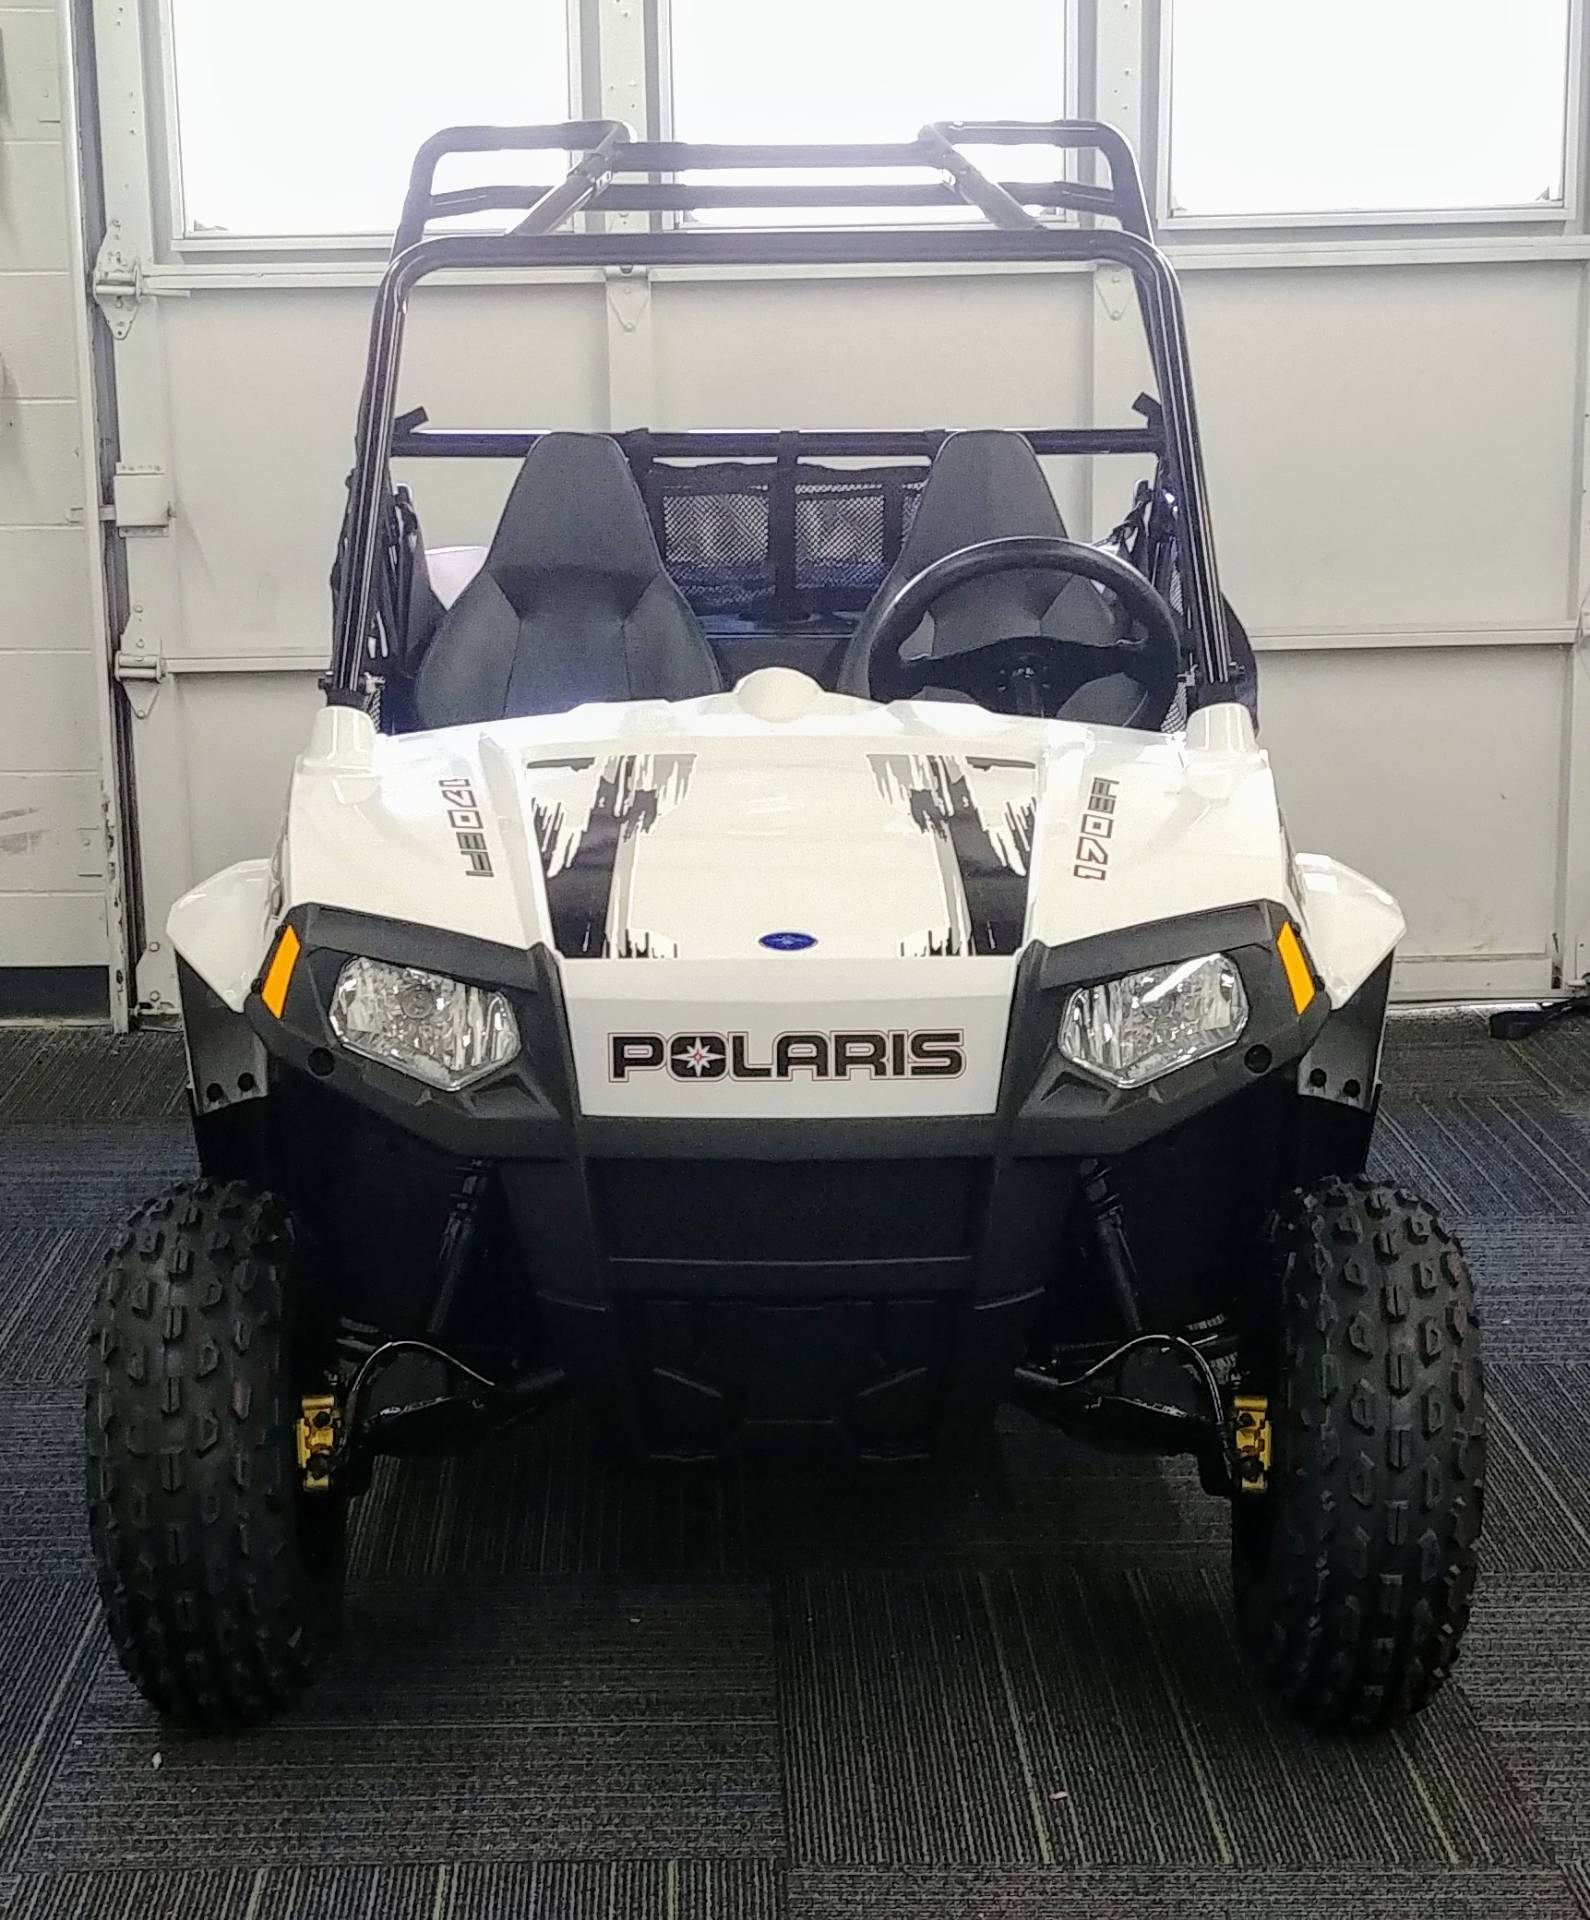 2020 Polaris RZR 170 EFI in Ontario, California - Photo 5